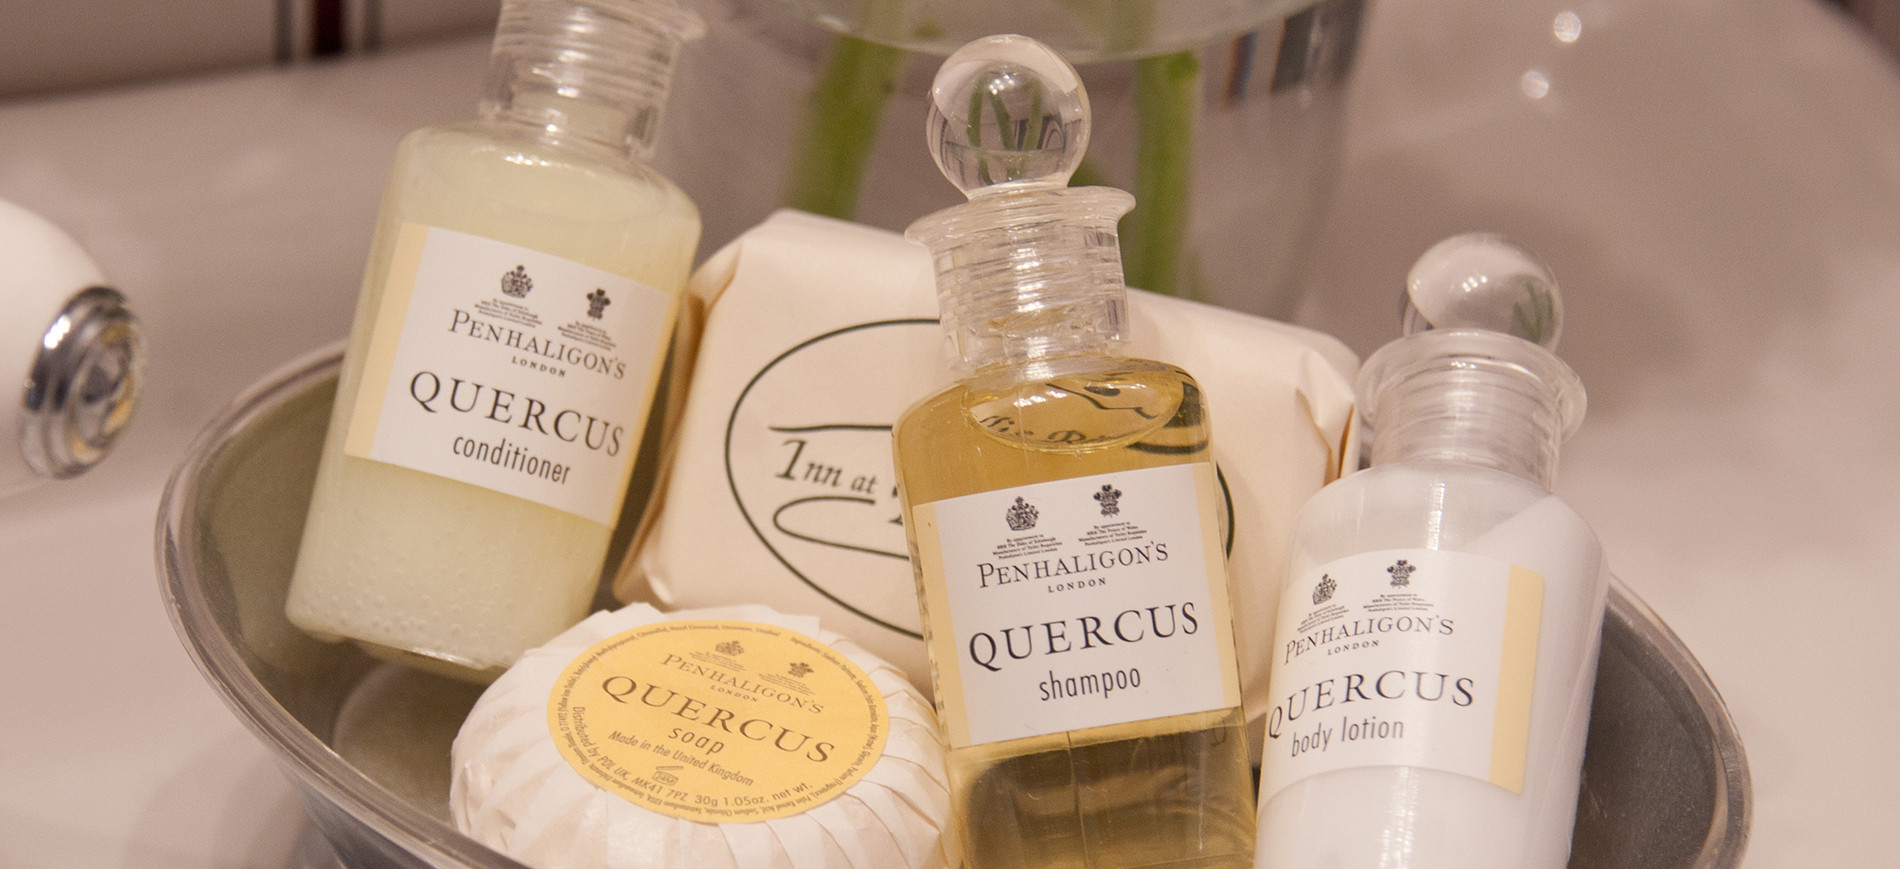 bottles of Quercus bath produces & round soap in silver dish